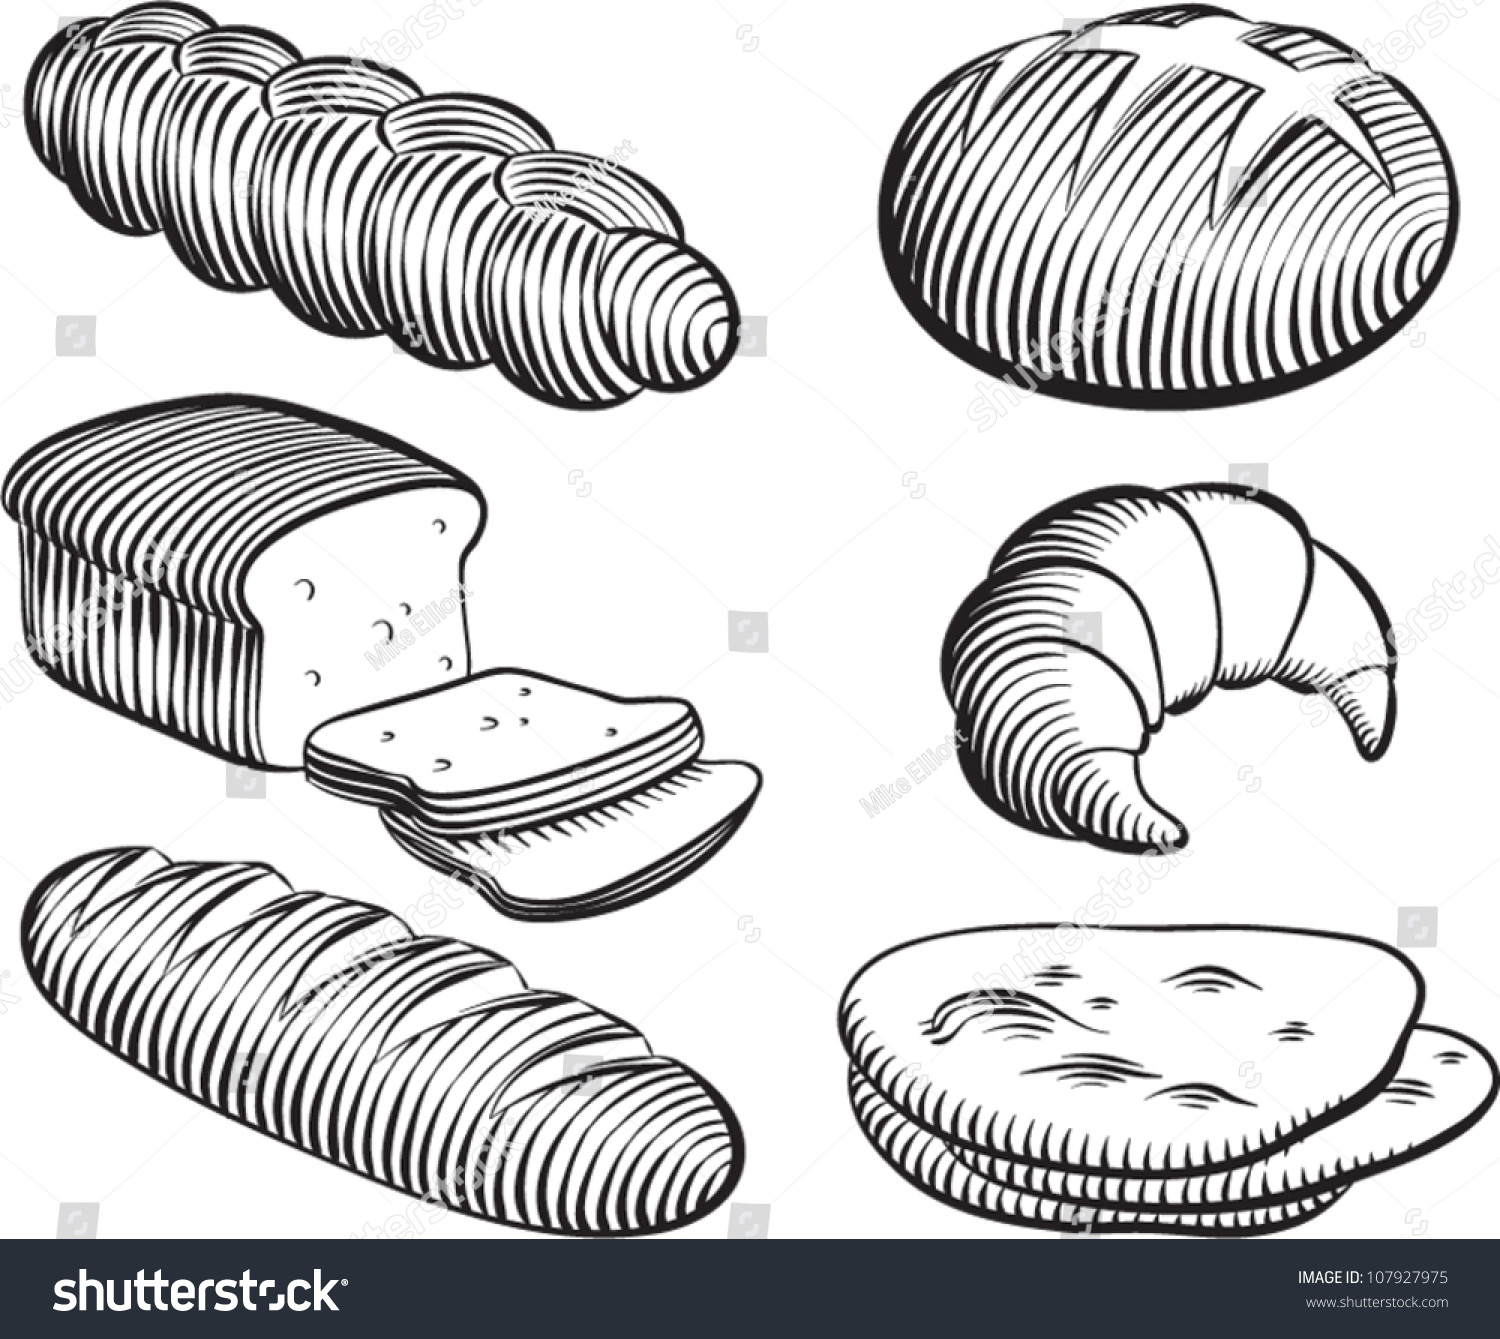 Loaf Clipart Black And White Old Fashioned Etched Style Illustration Various Stock